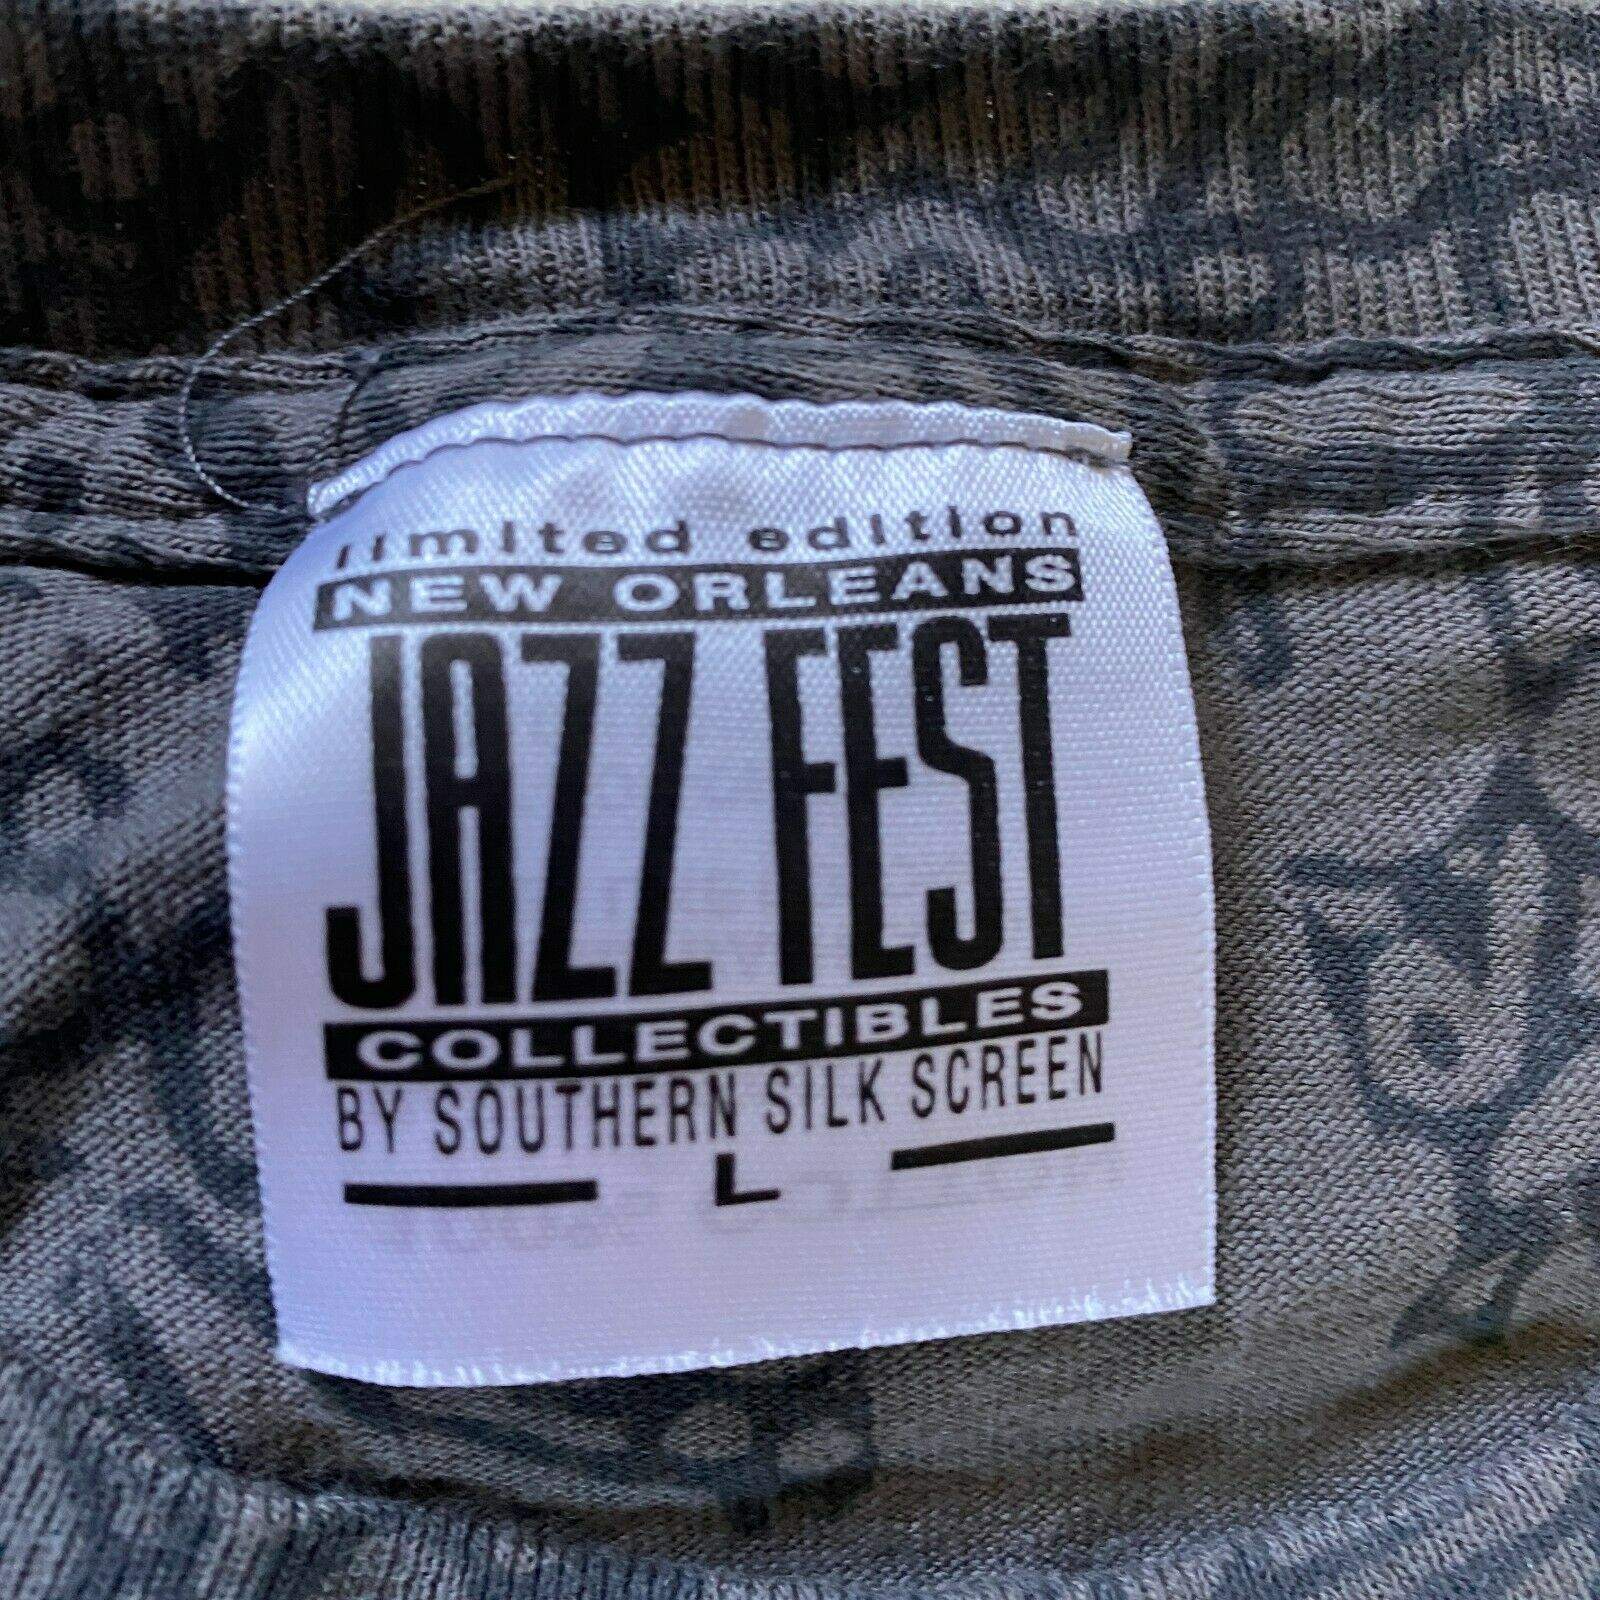 Chicago Jazz Fest T Shirt Large 40th 2018 Nola 300 New Orleans Tee Music Band - $25.19